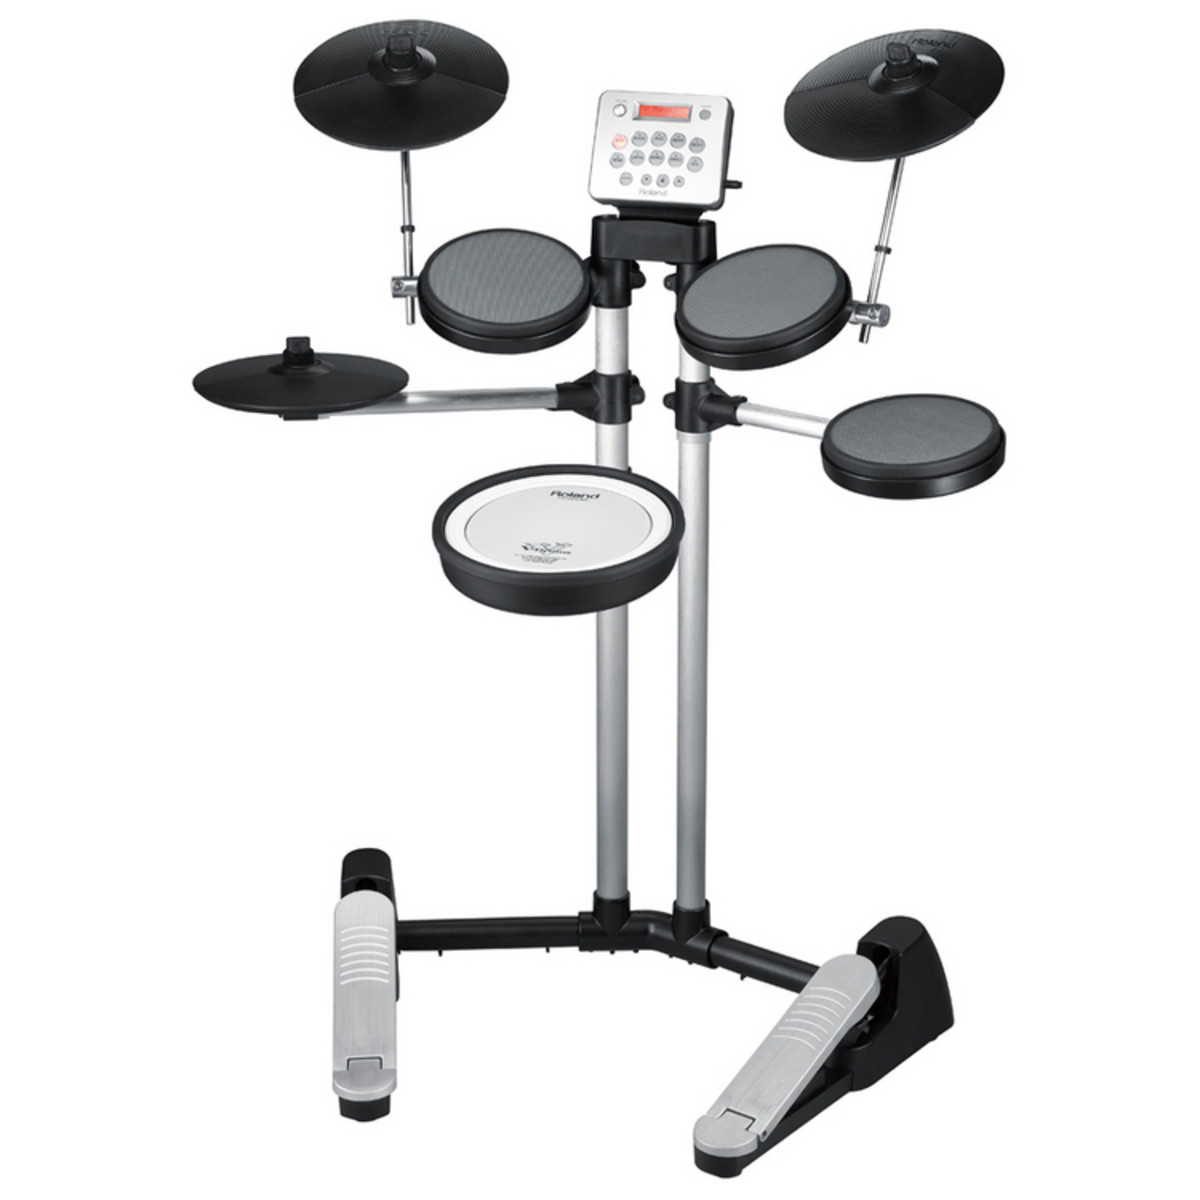 E On Electric Roland Hd 3 V Drums Lite Electronic Drum Kit Nearly New